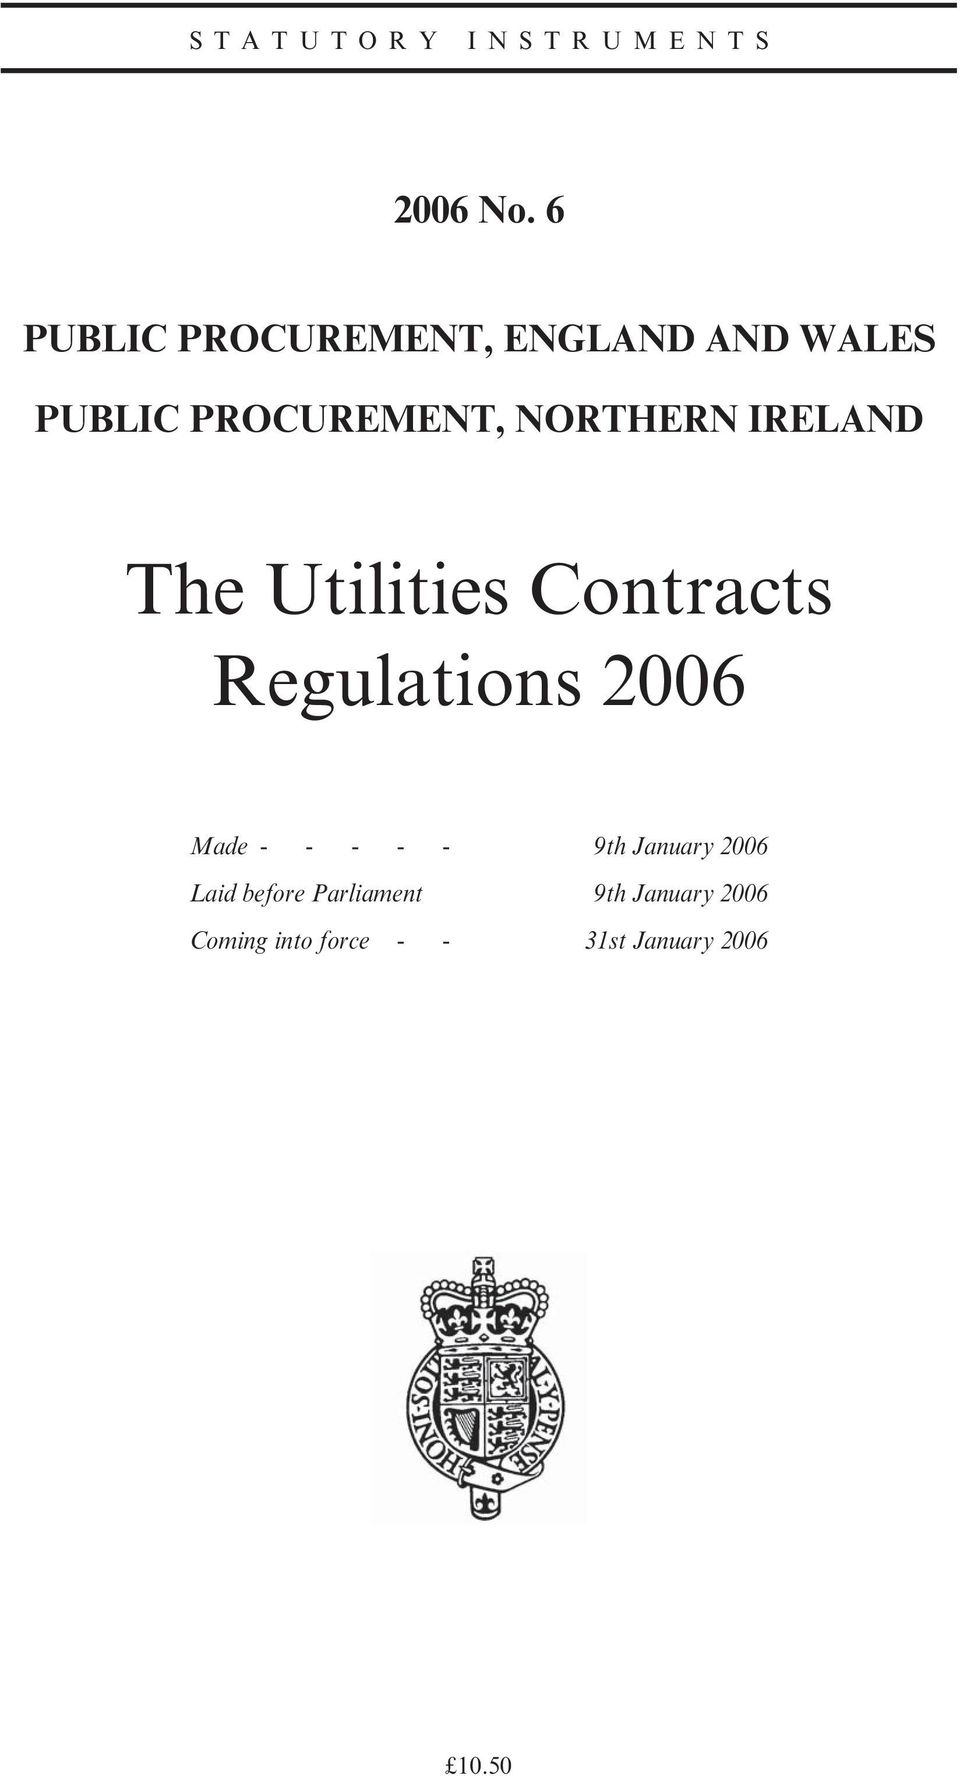 NORTHERN IRELAND The Utilities Contracts Regulations 2006 Made - -